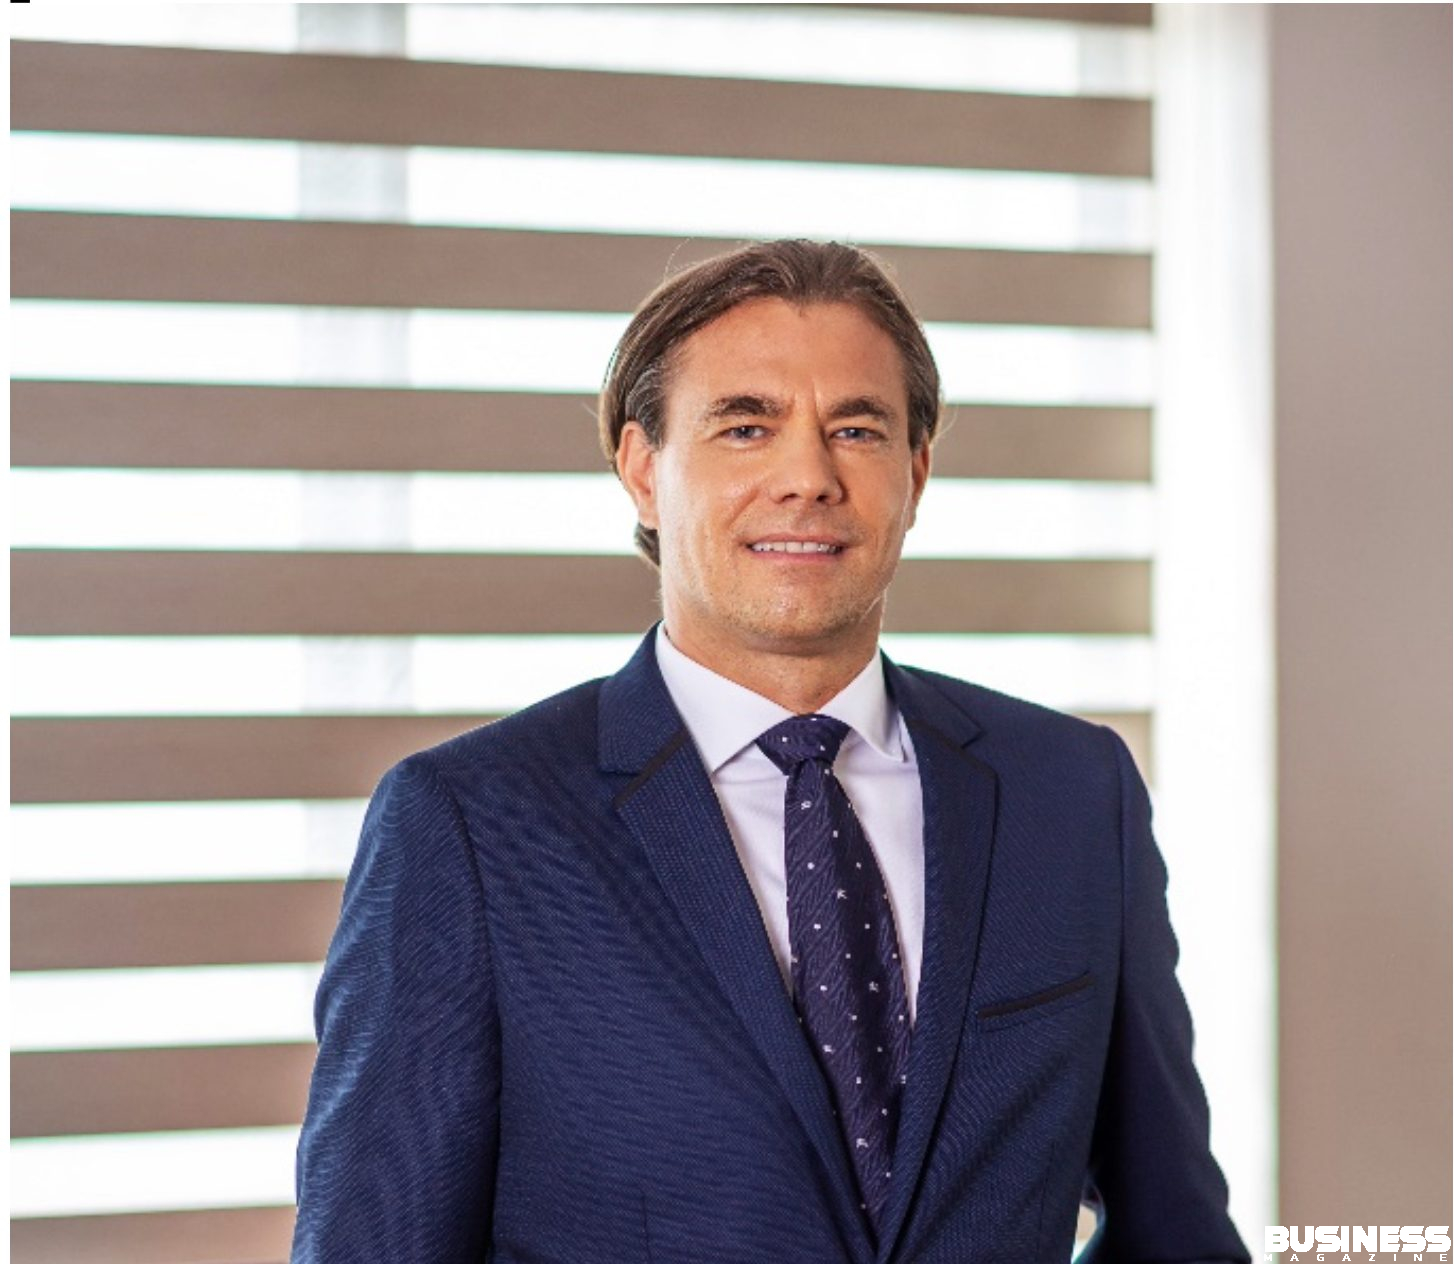 Guillaume Passebecq, Head of Private Banking and Wealth Management à Bank One